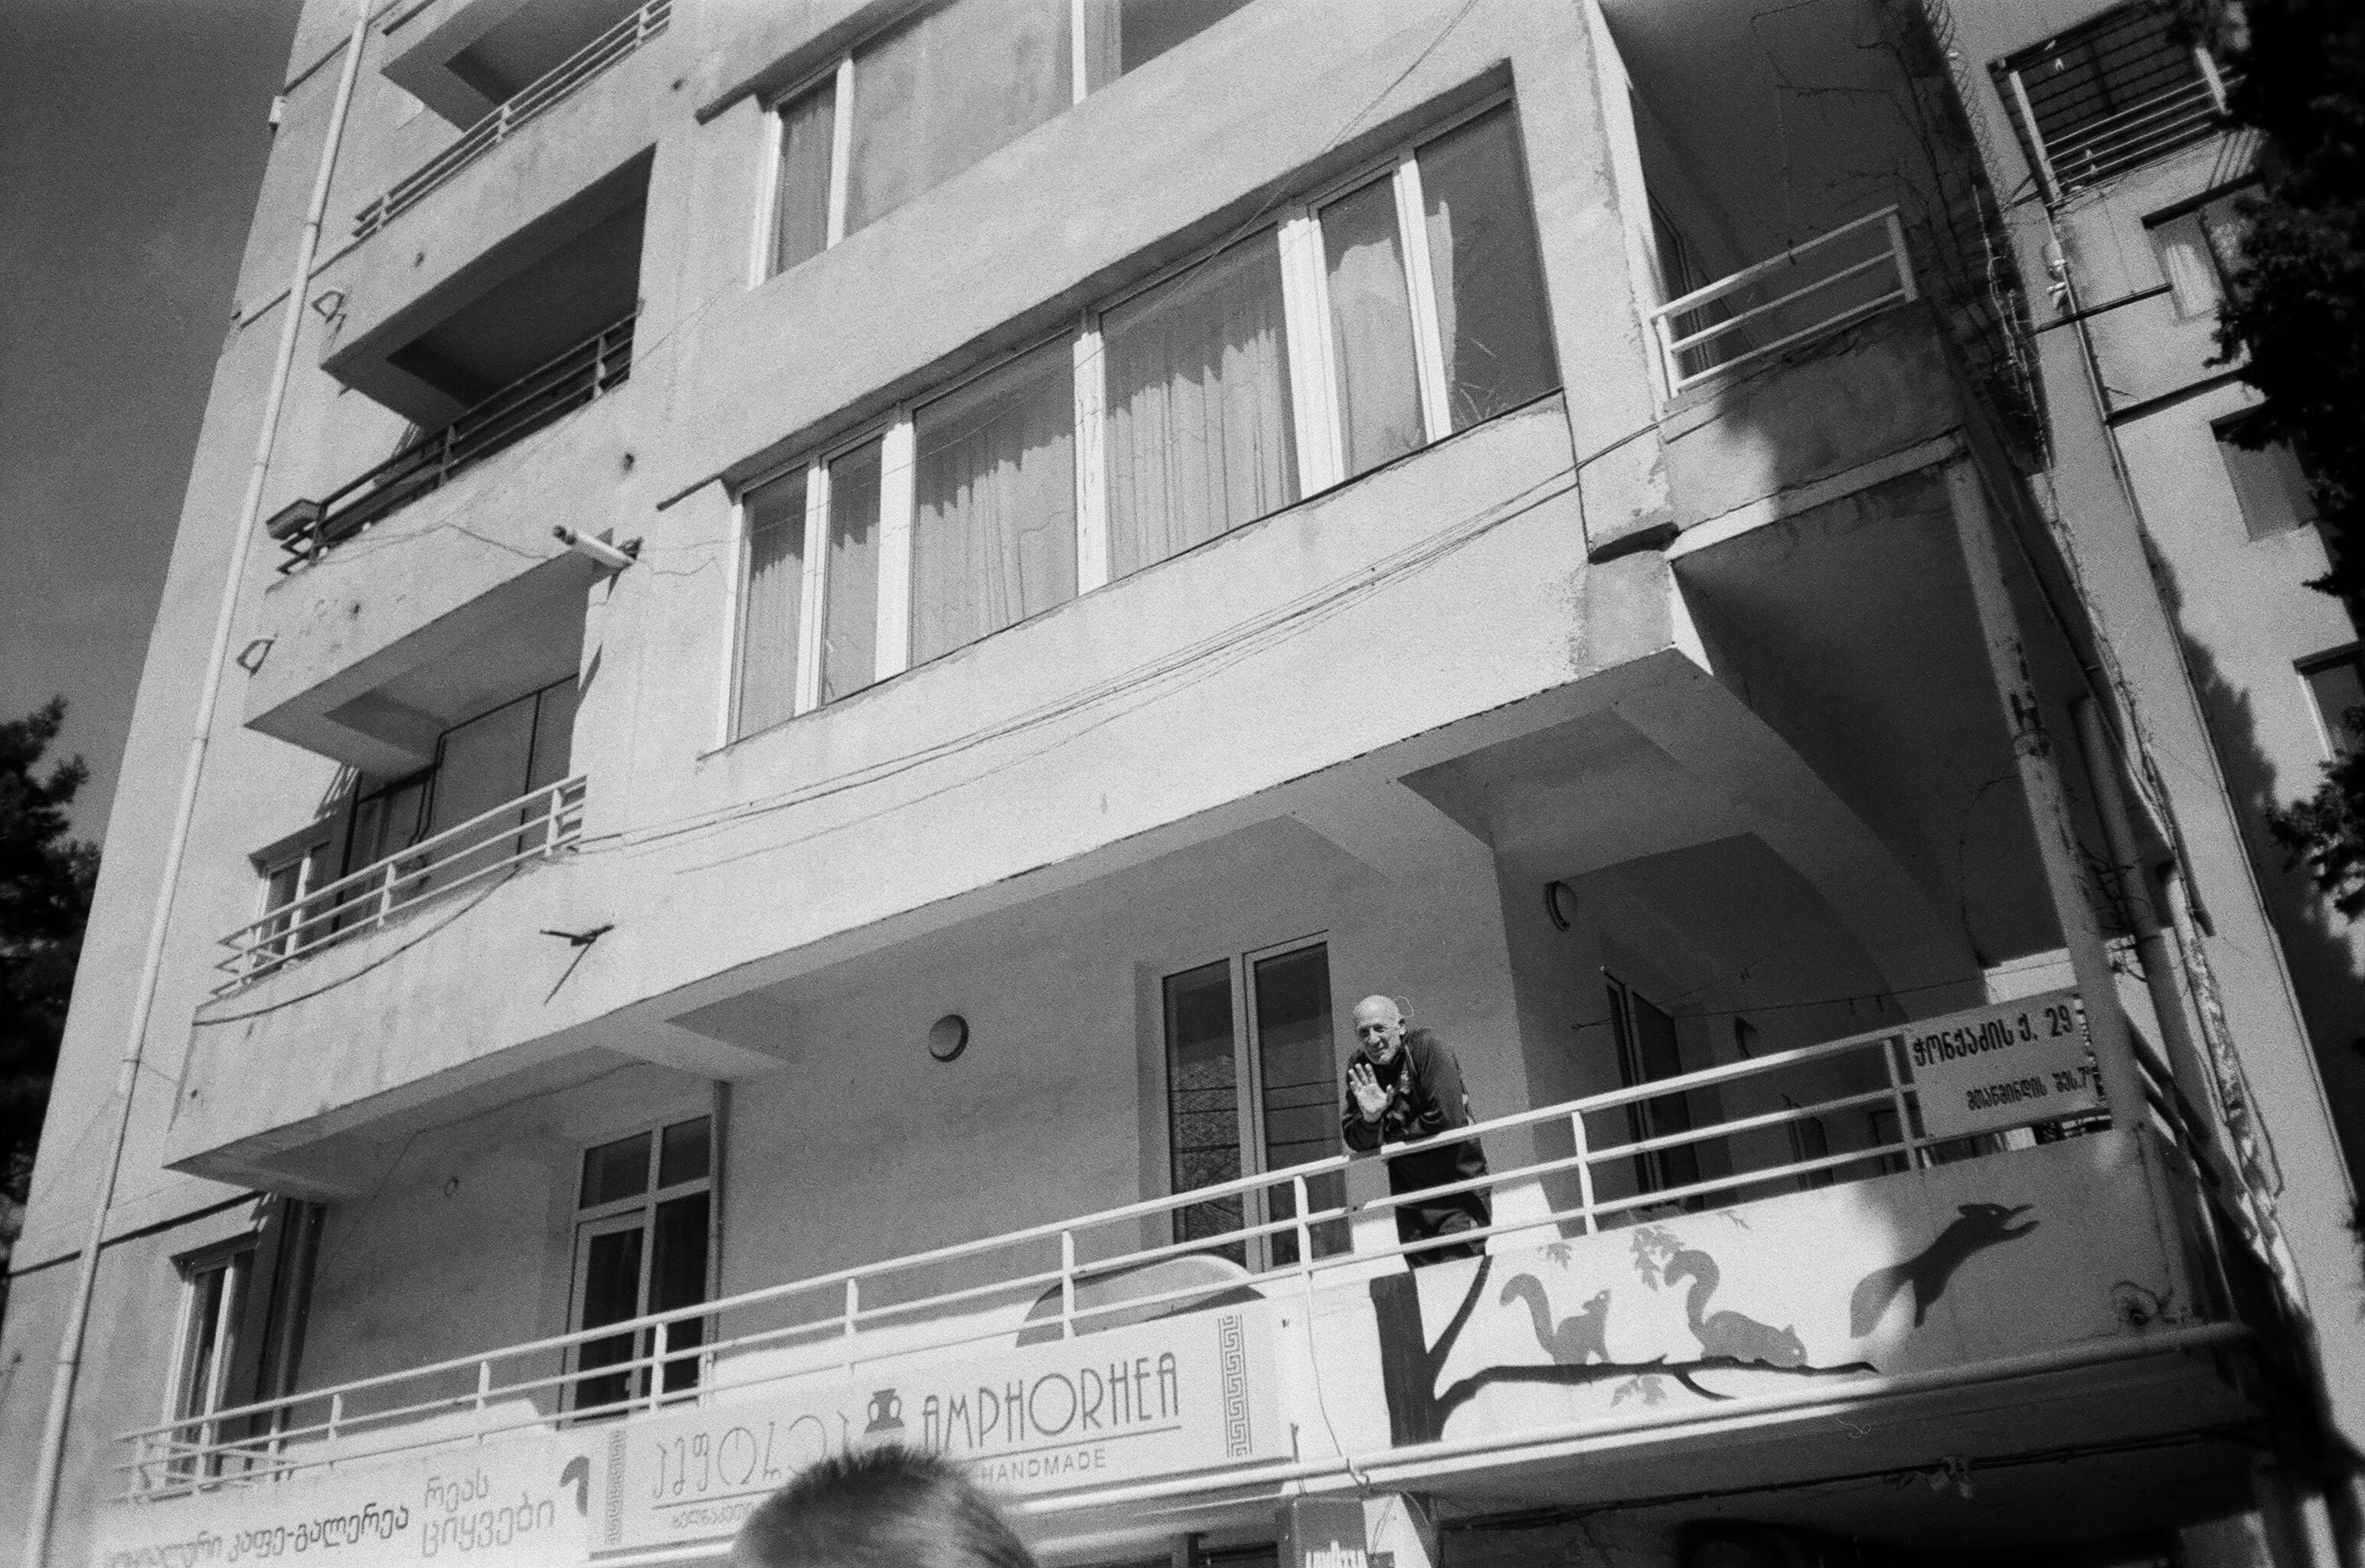 Greyscale Photo of Man Waving at Person While on Balcony of a Building